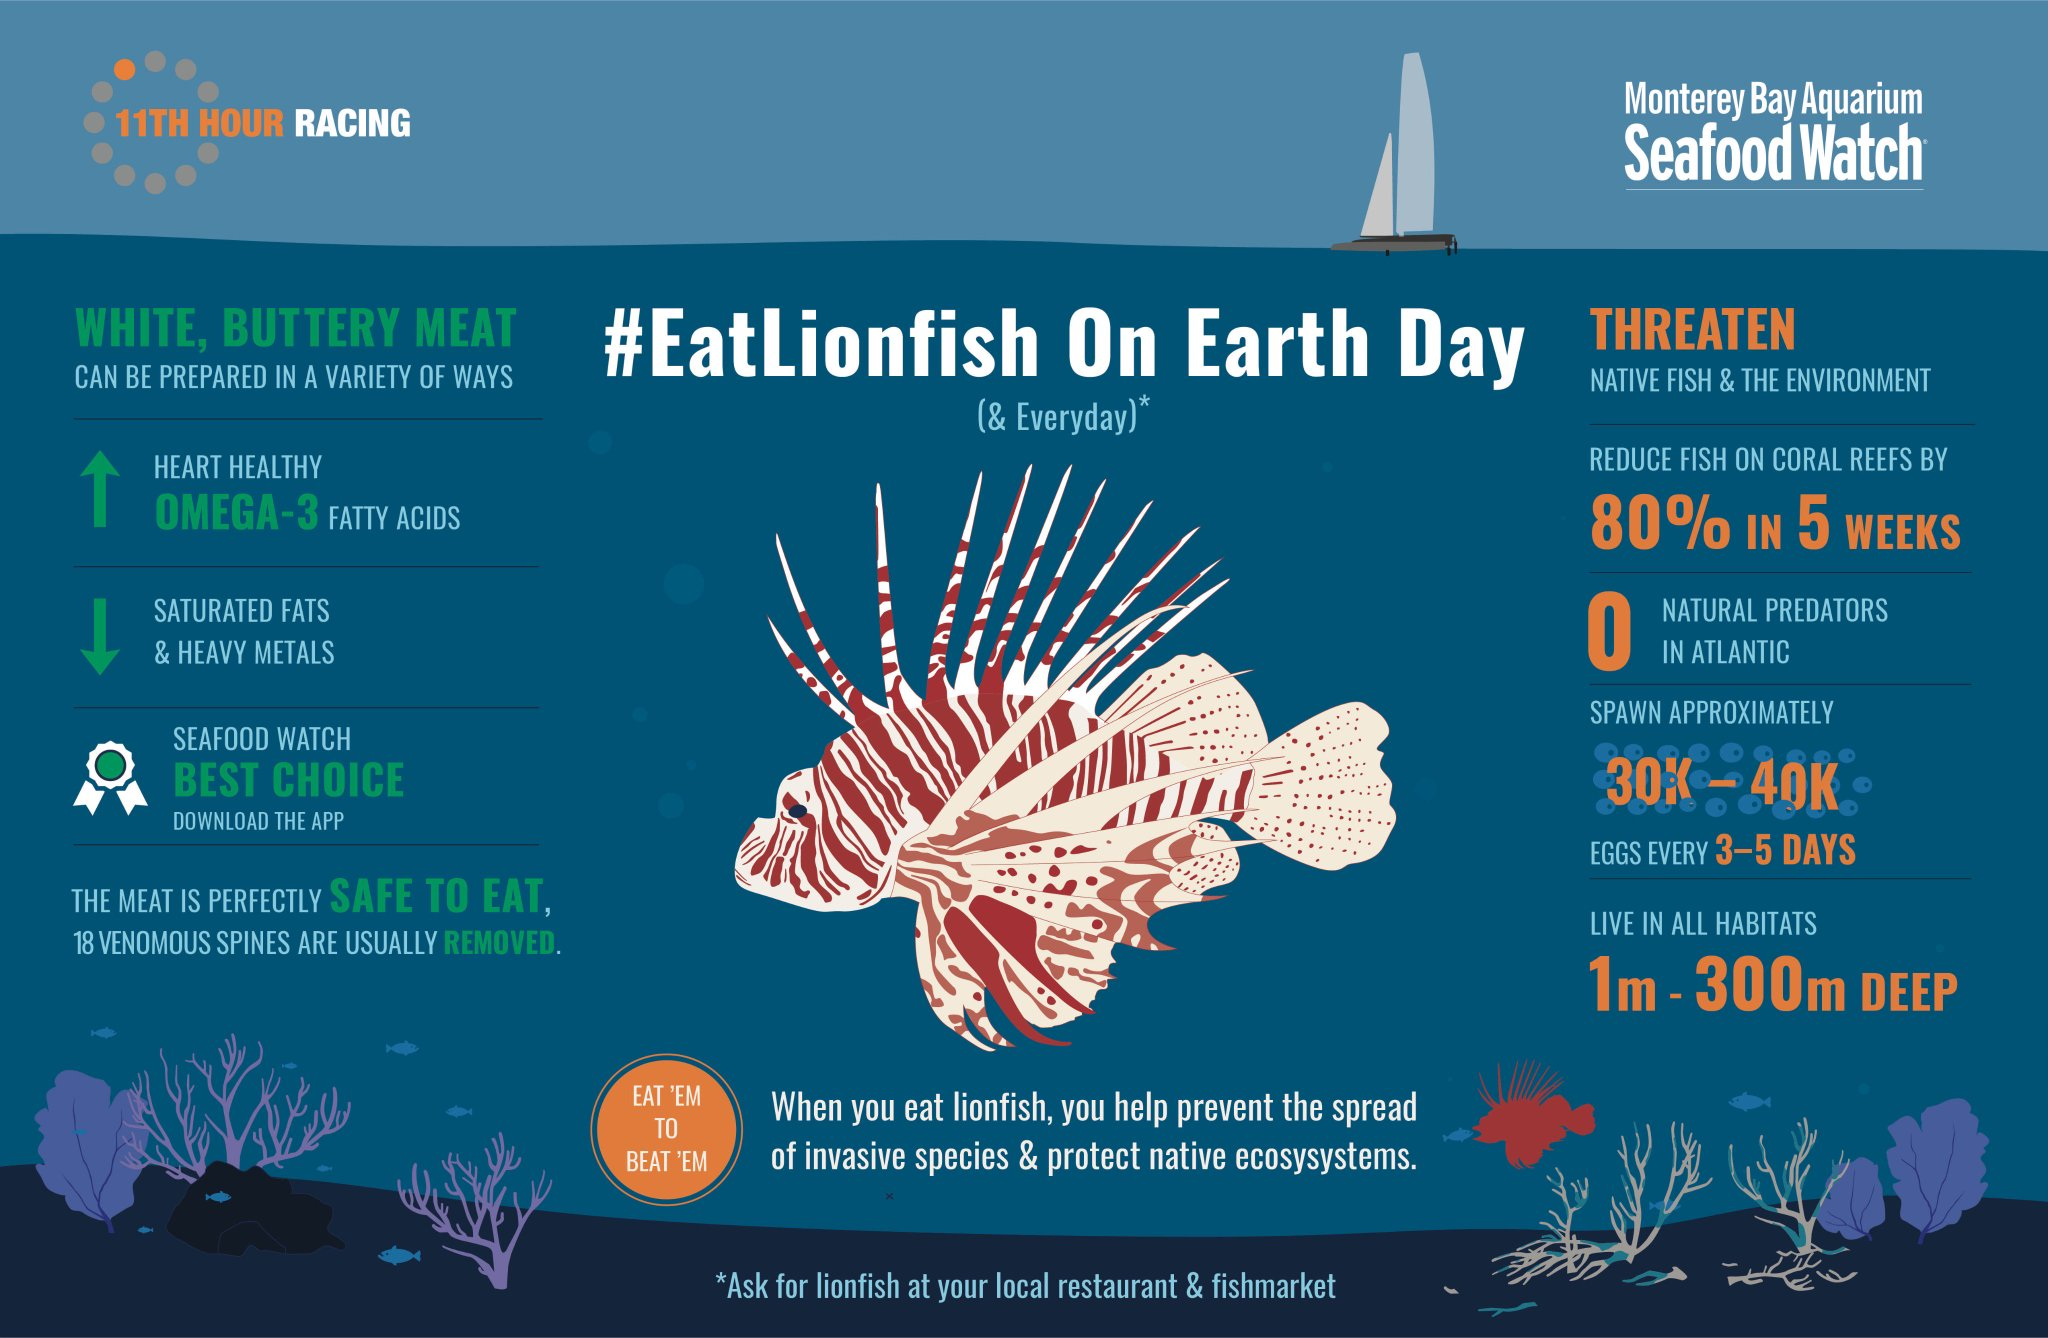 4/4 #Lionfish have no natural predators, lay up to 50,000 eggs every 3 days, prey on over 100 fish species and have been spotted Italy! https://t.co/fy63lvXaaF